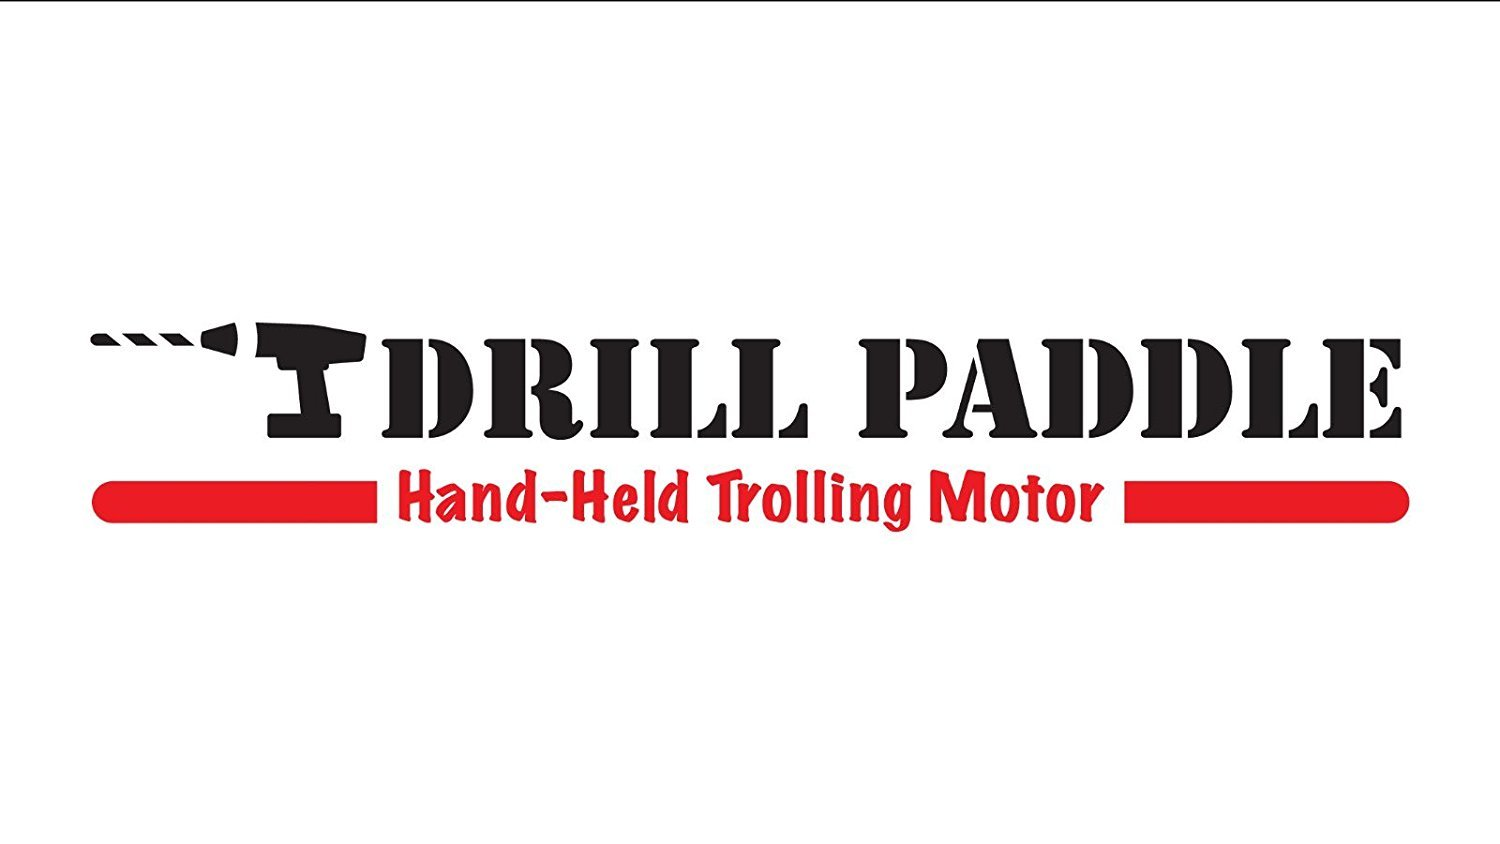 DRILL PADDLE - Replaces Trolling Motor for Emergency Backup by DRILL PADDLE